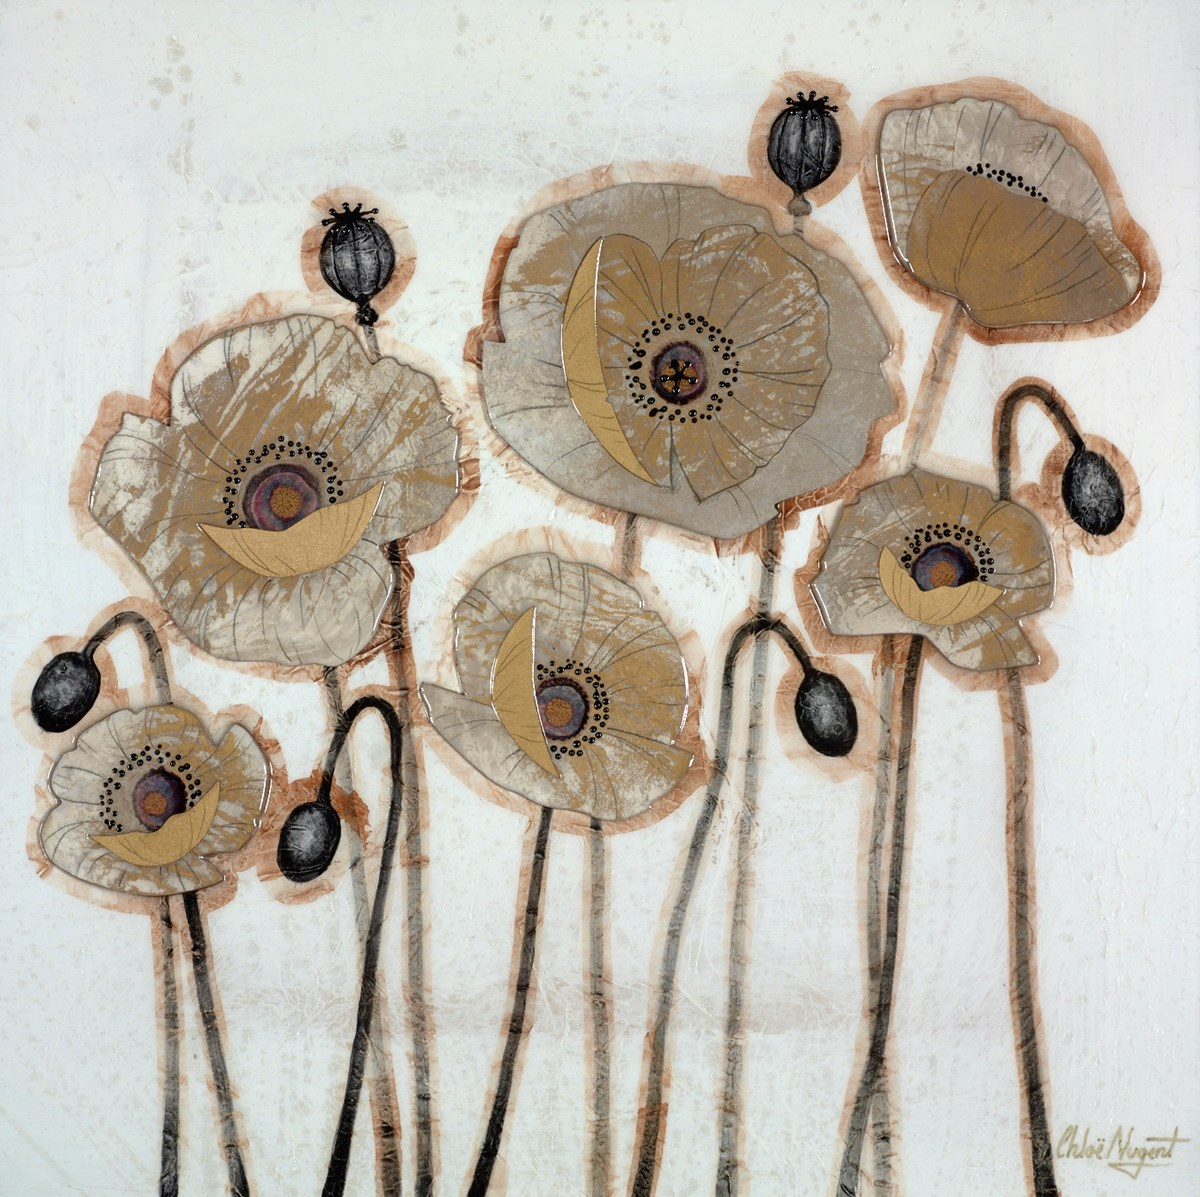 Burnished Poppies IV by chloe nugent -  sized 20x20 inches. Available from Whitewall Galleries